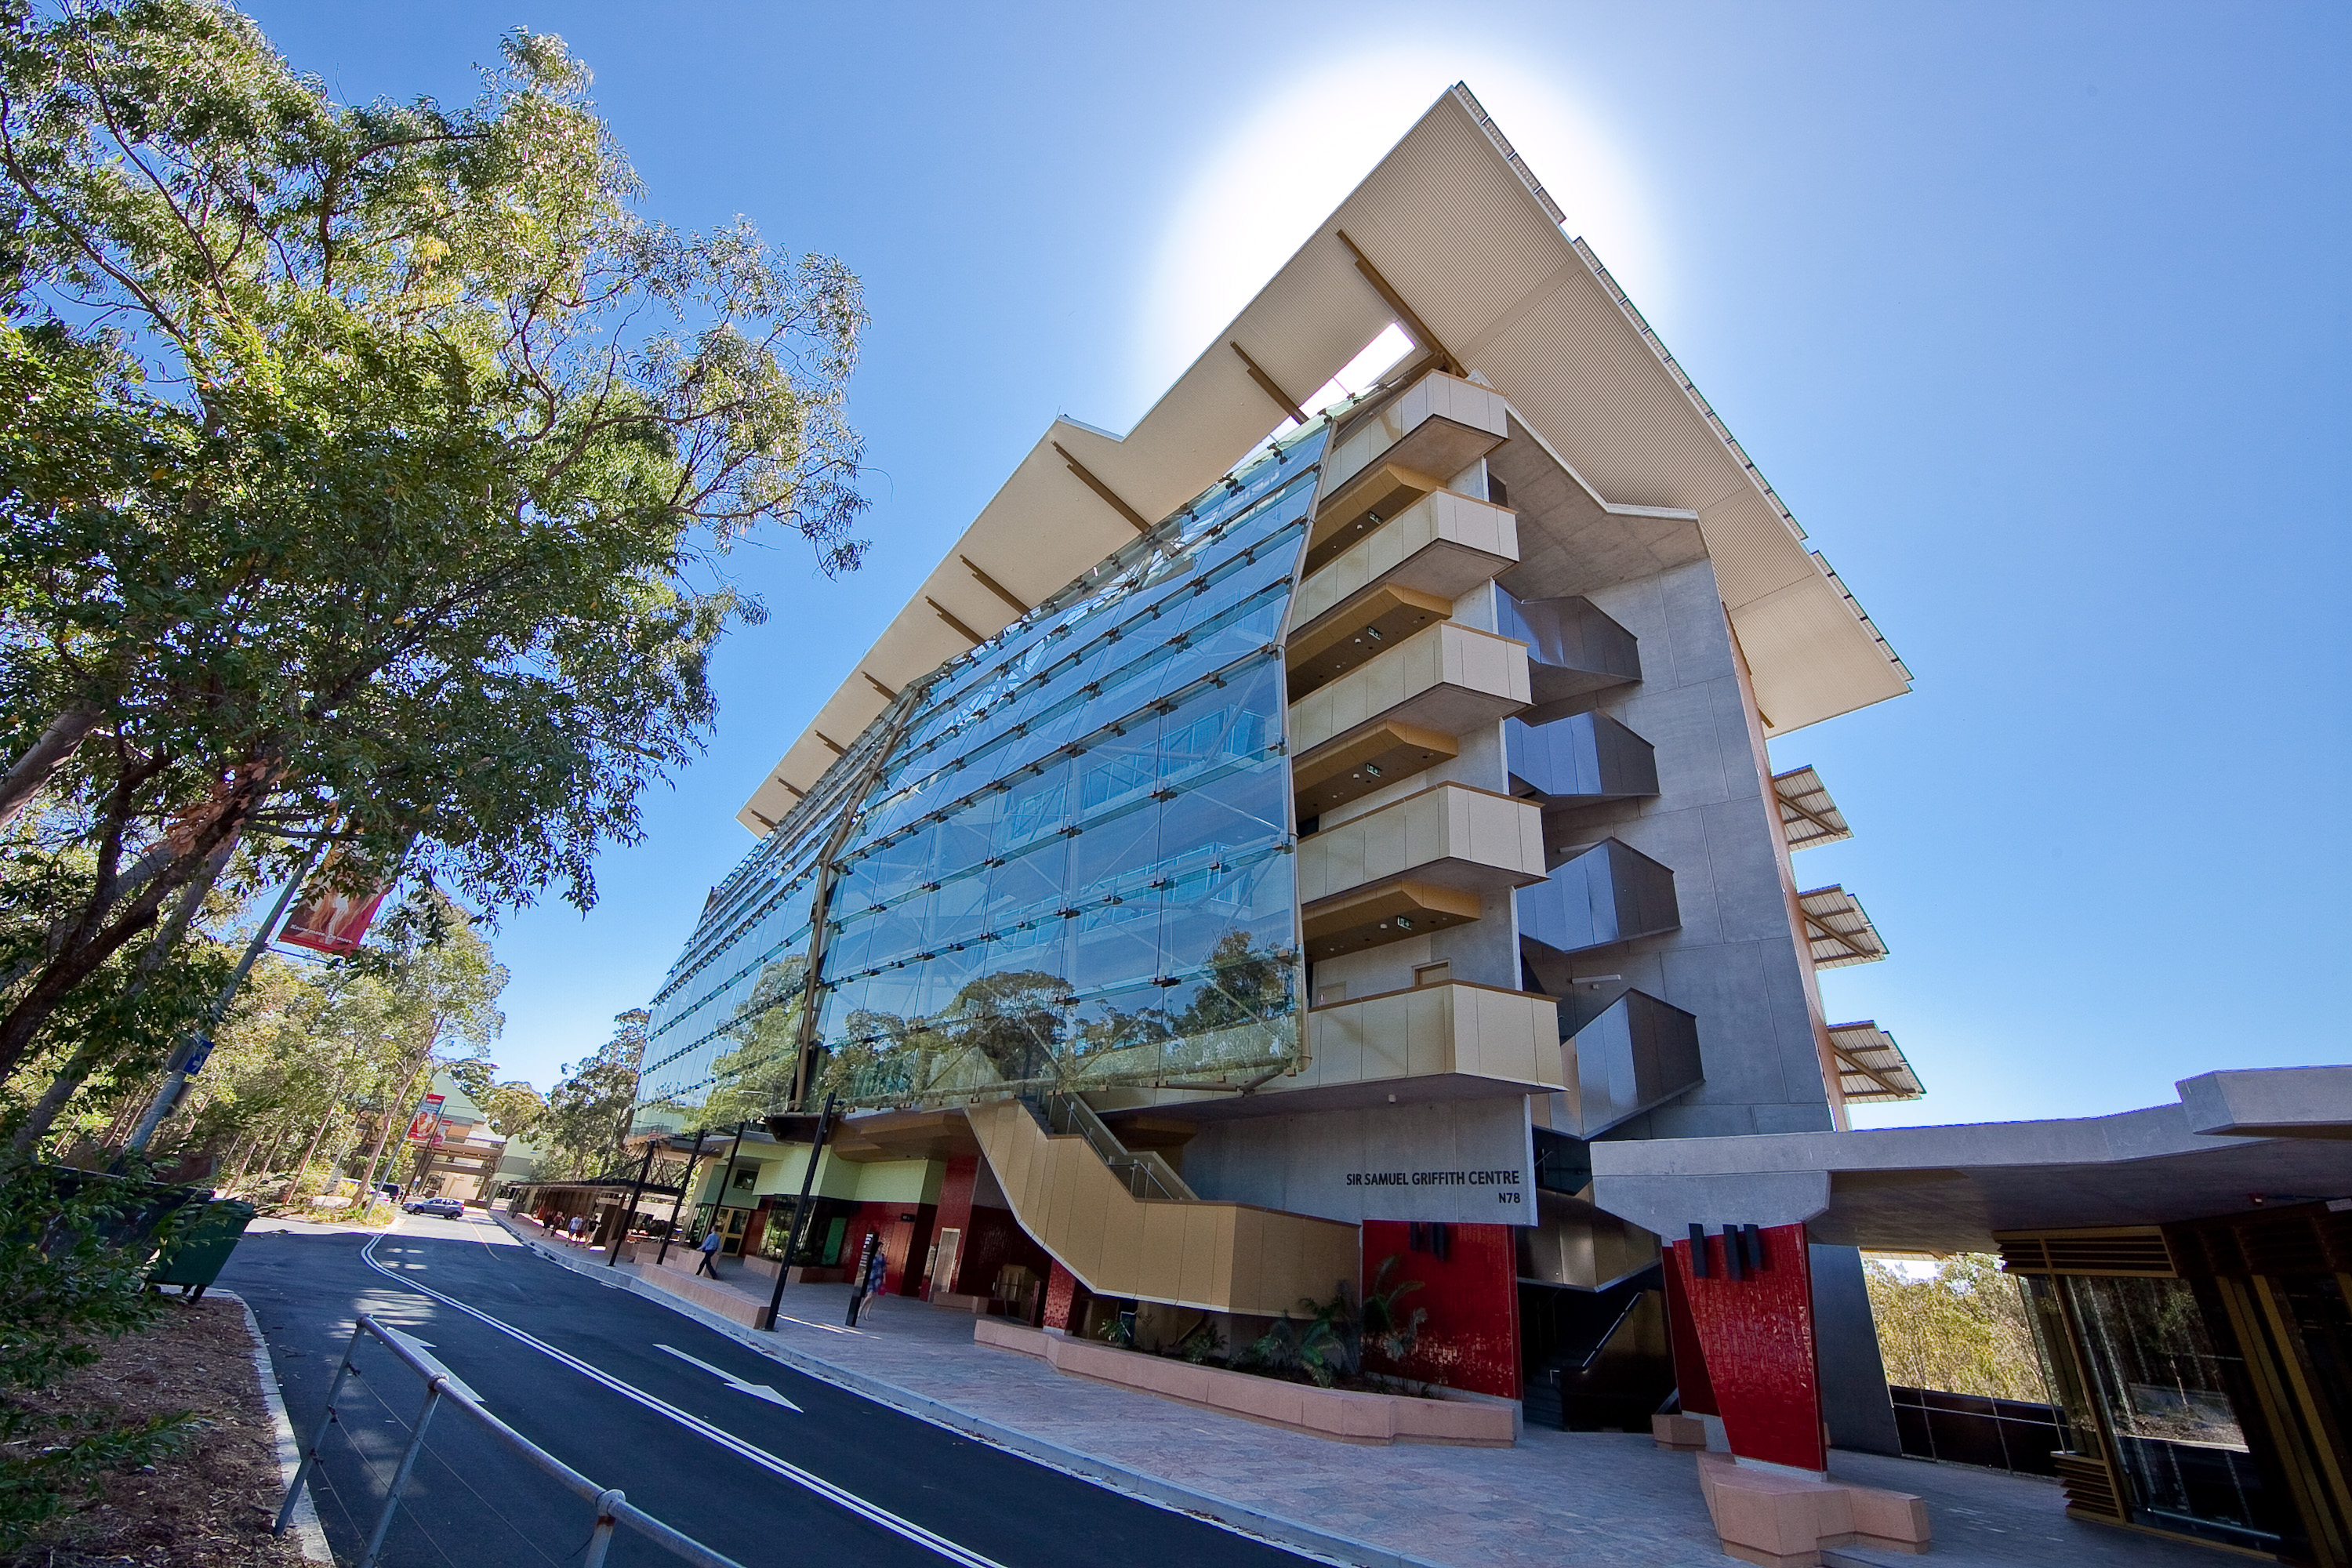 Griffith Nathan Campus